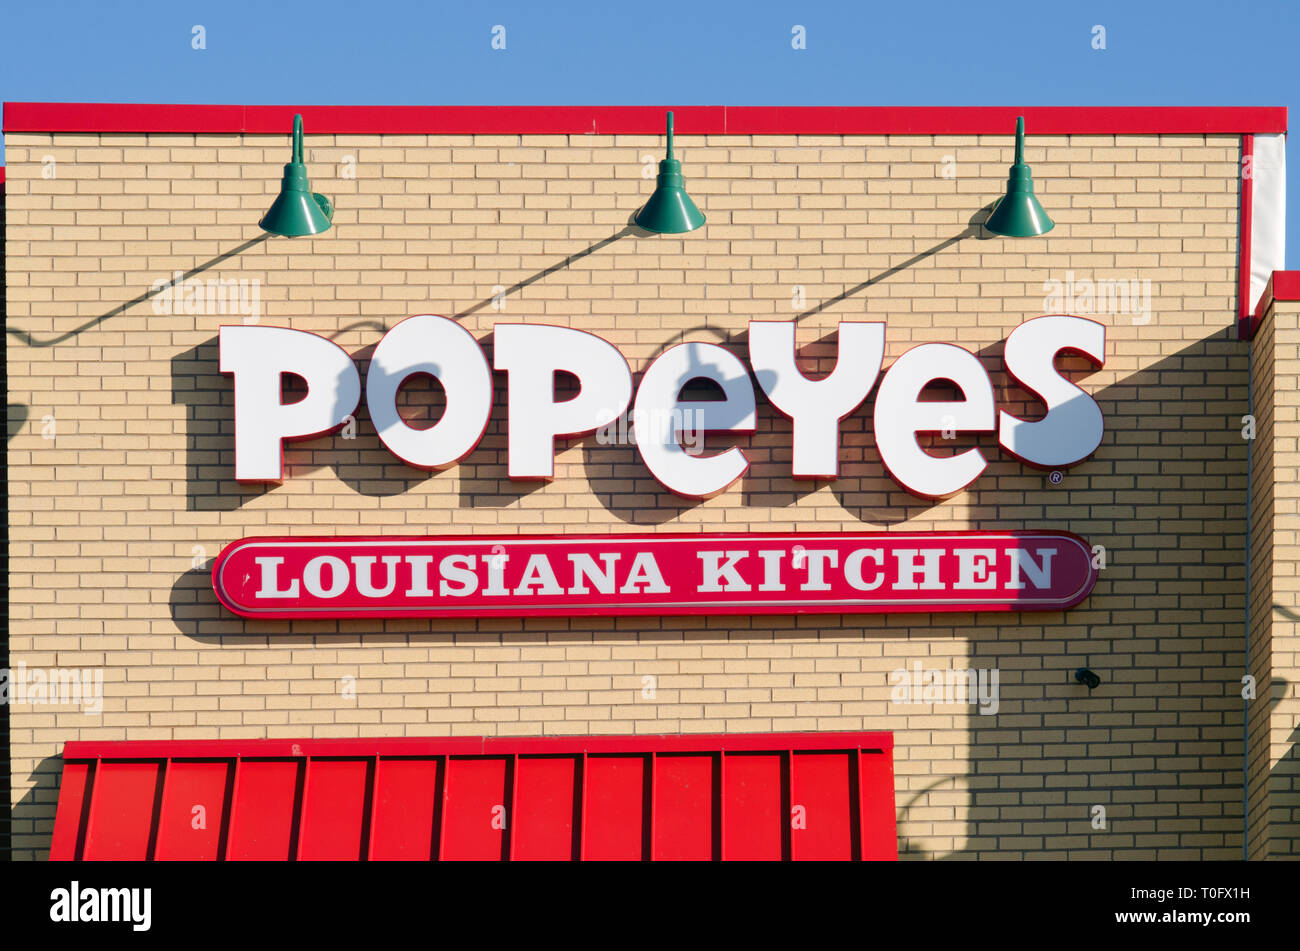 Exterior of Popeyes Louisiana Kitchen restaurant with sign in New Bedford, Massachusetts USA. US chain is known for fried chicken - Stock Image